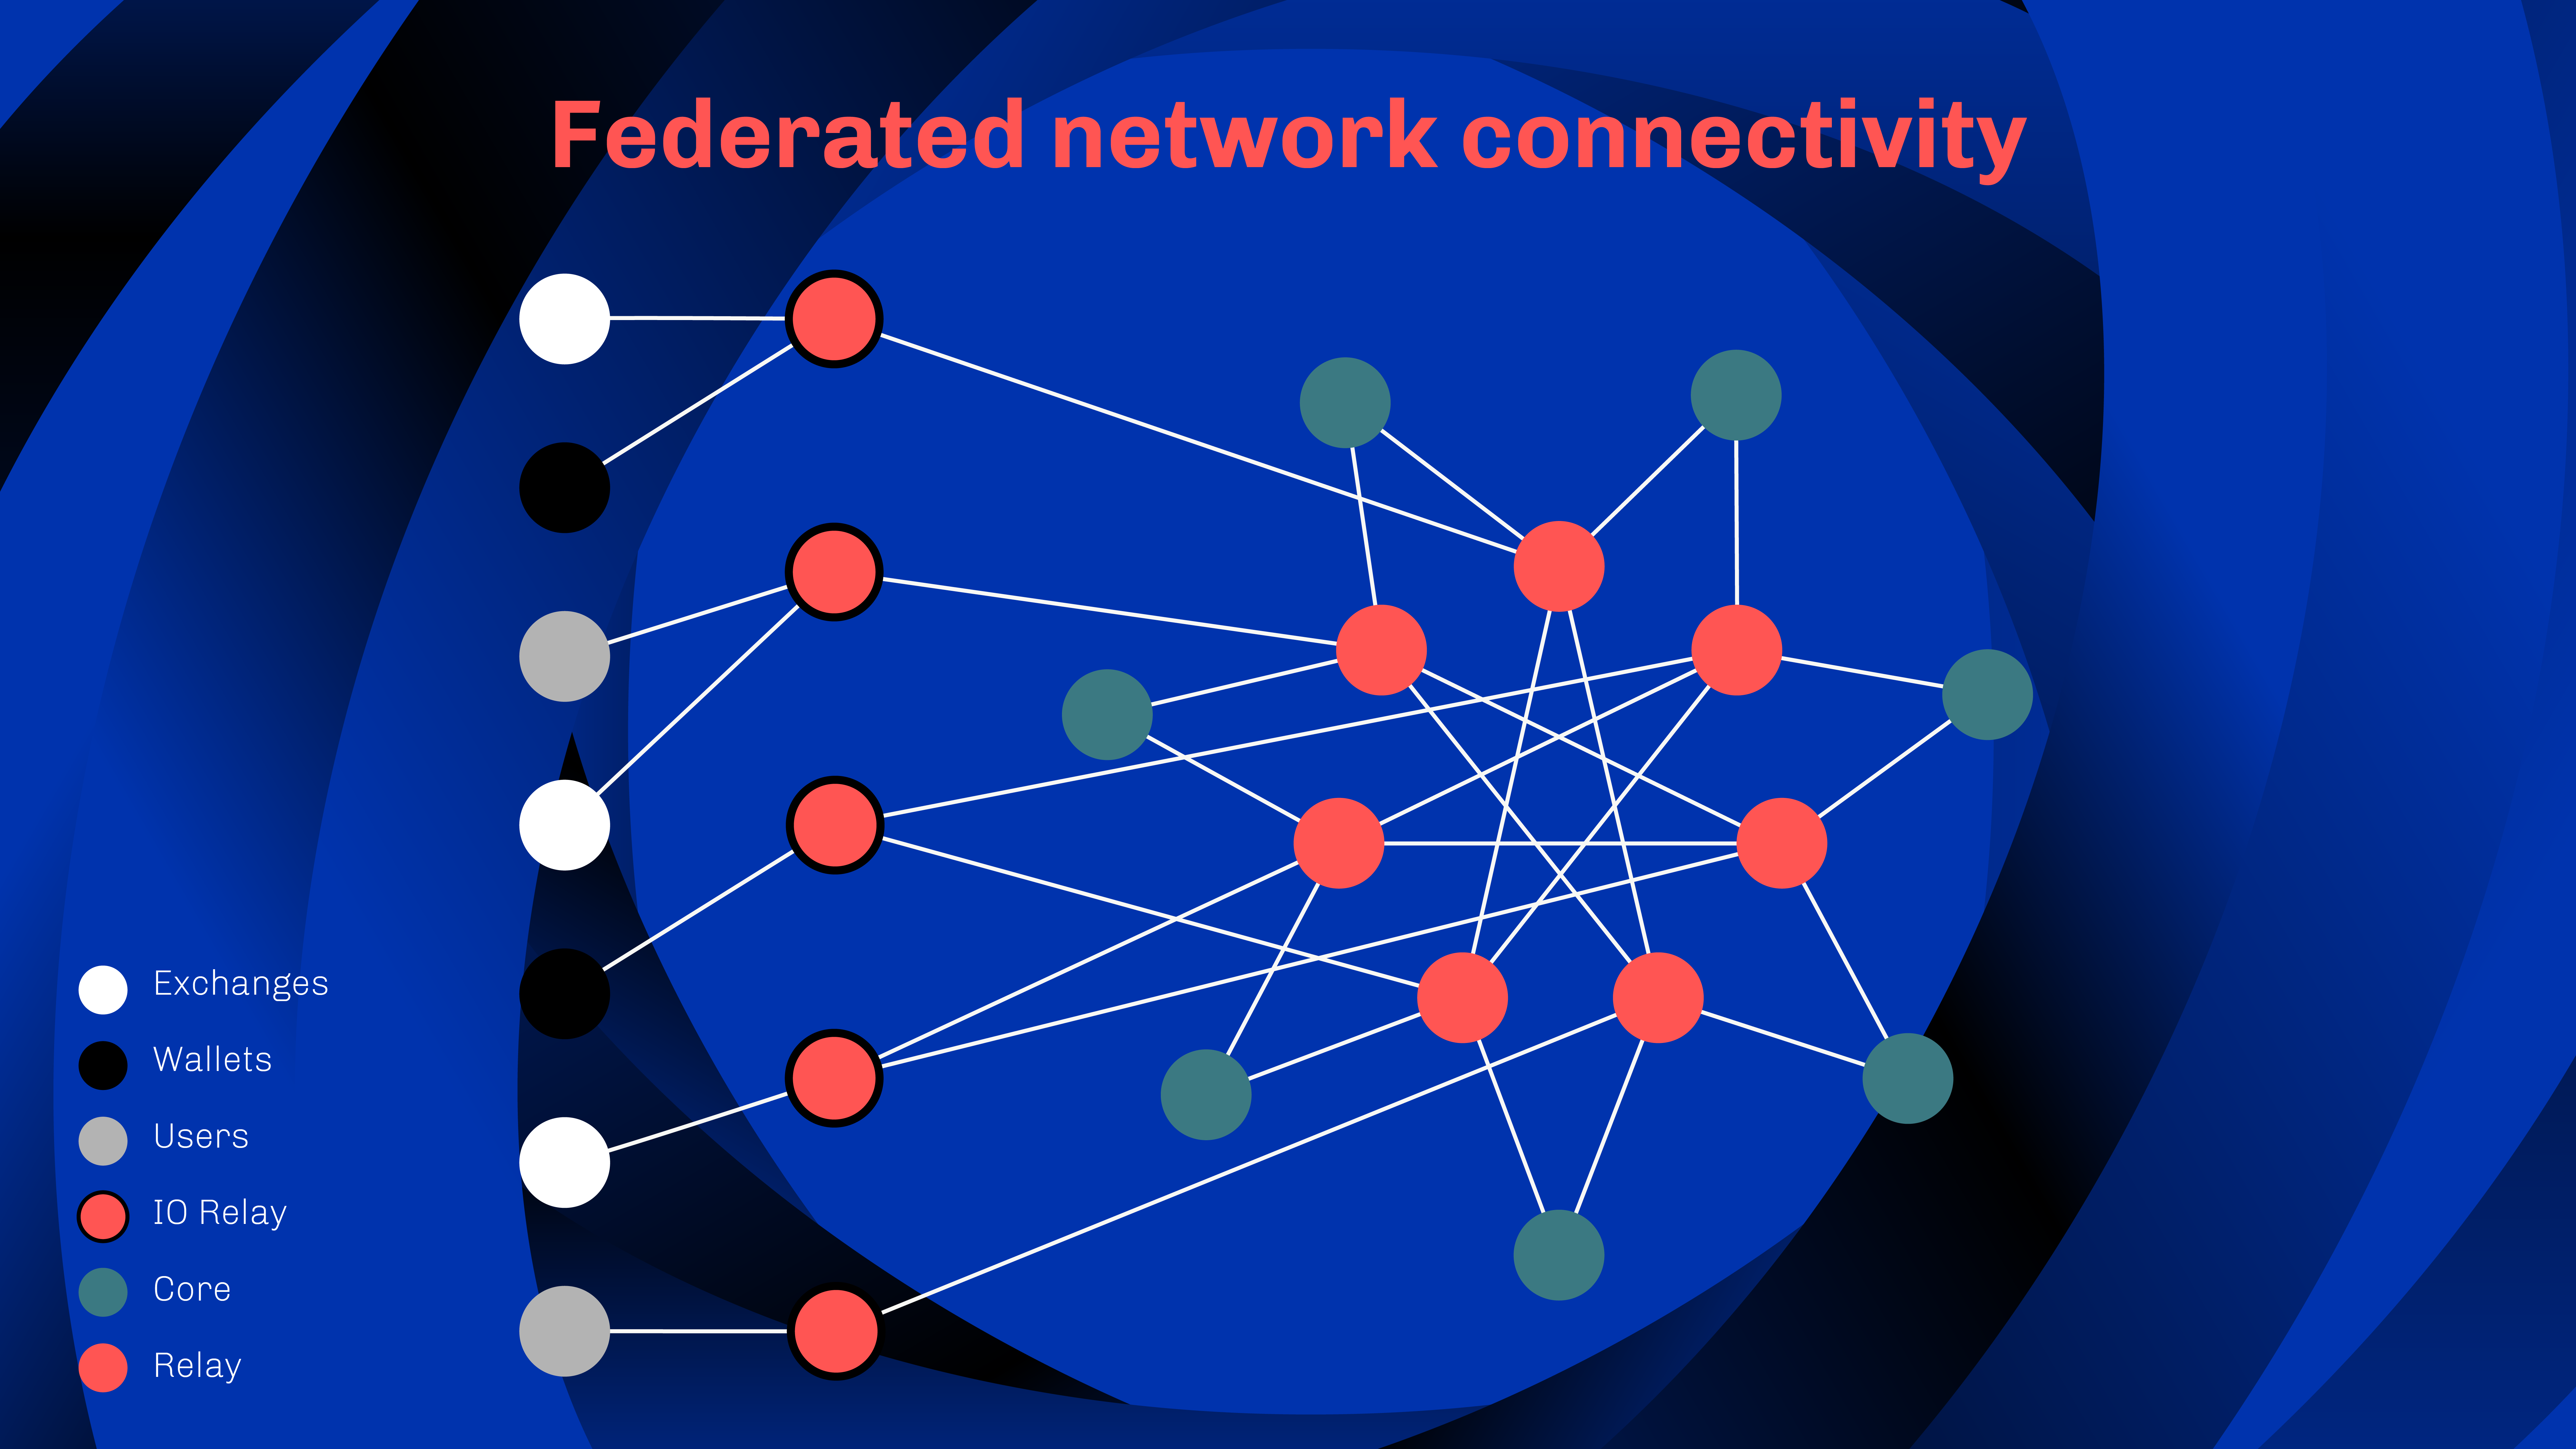 federated network connectivity